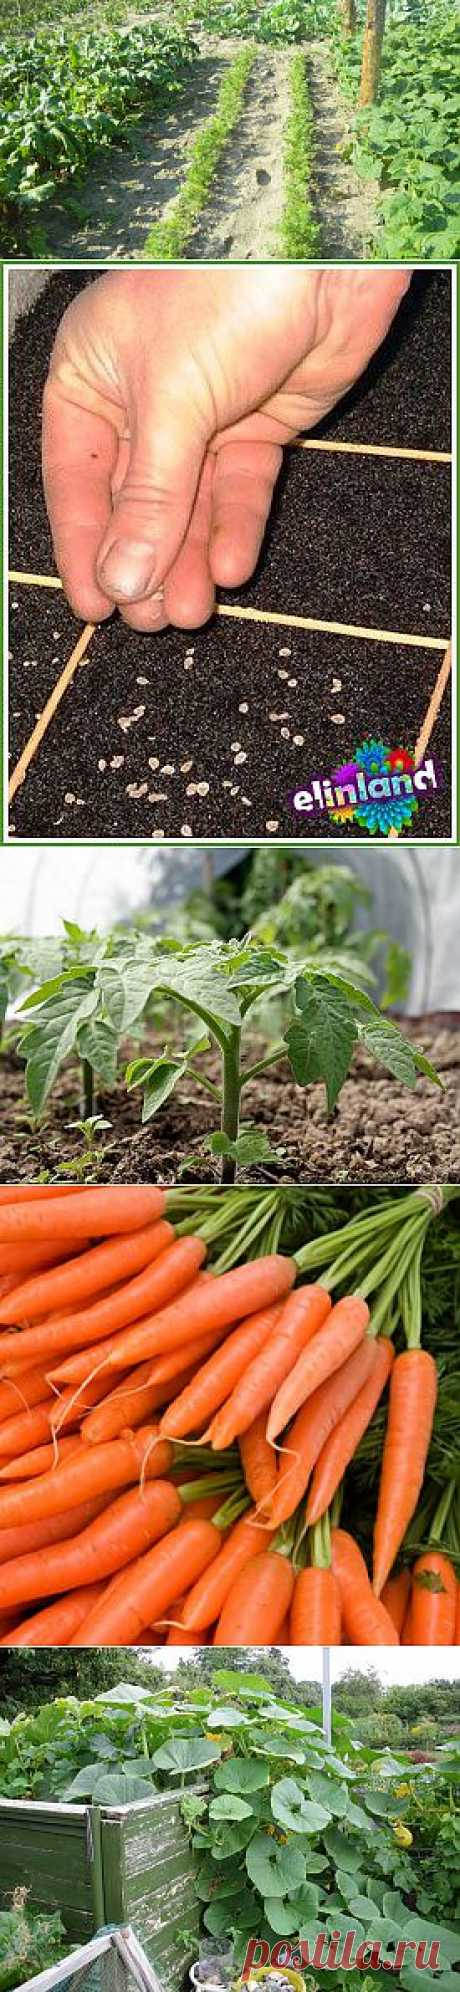 Carrots, beet and other vegetable cultures Diary of the gardener